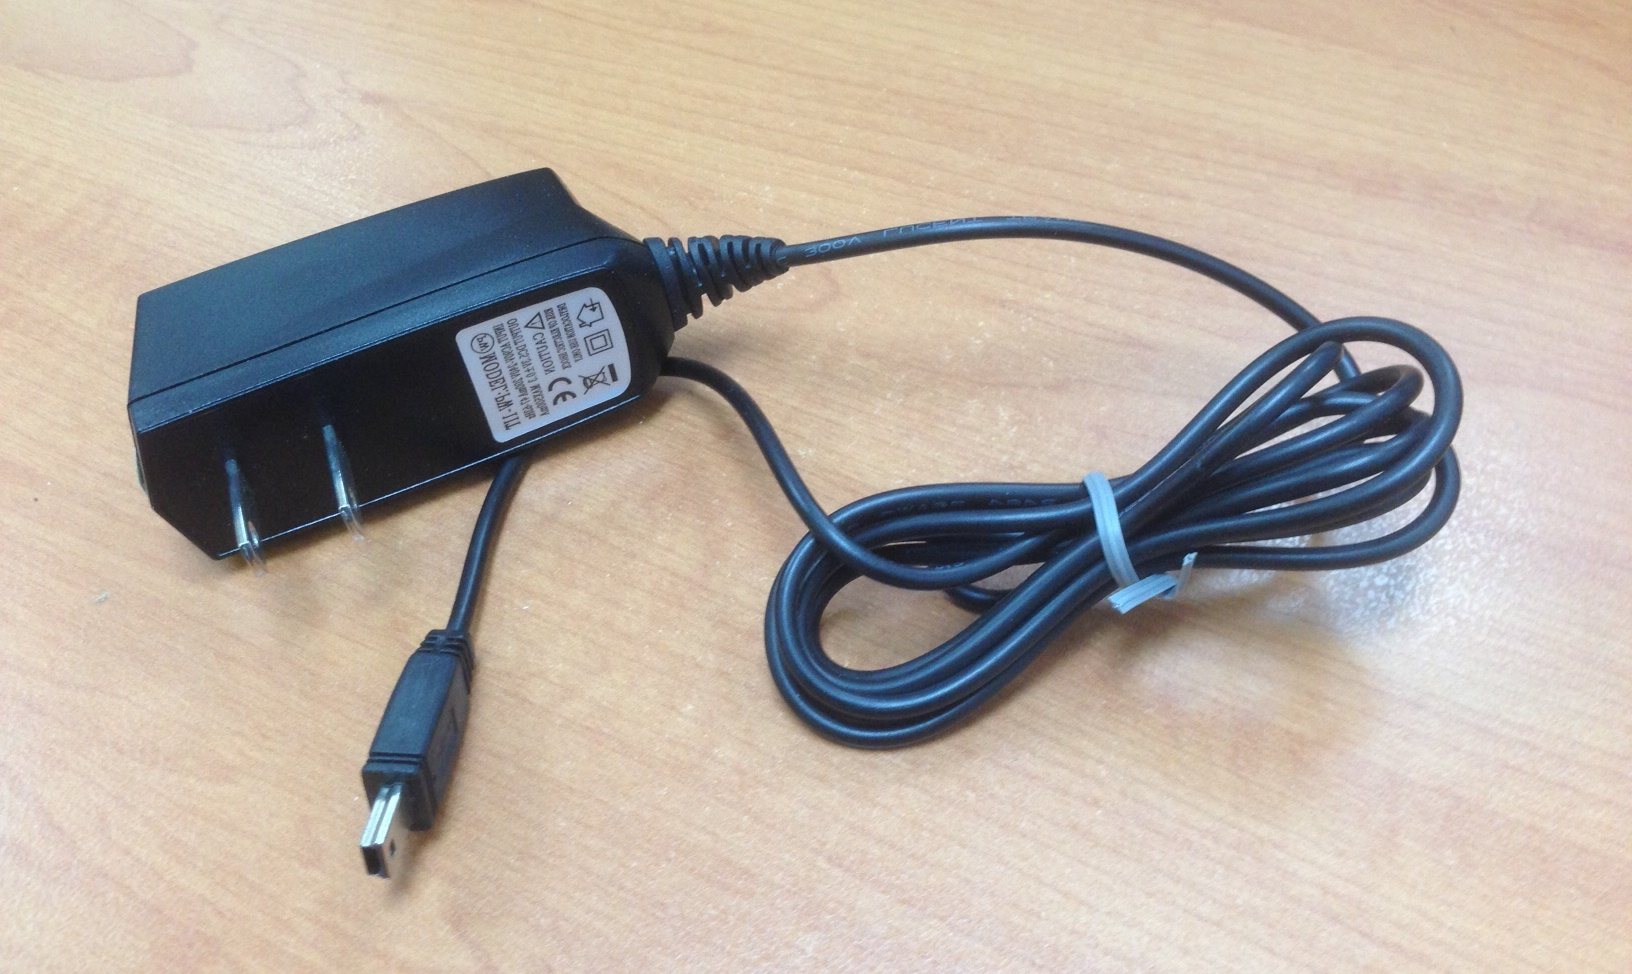 USA Power Supply Mini USB 5.3v 0.5A for GPS Units